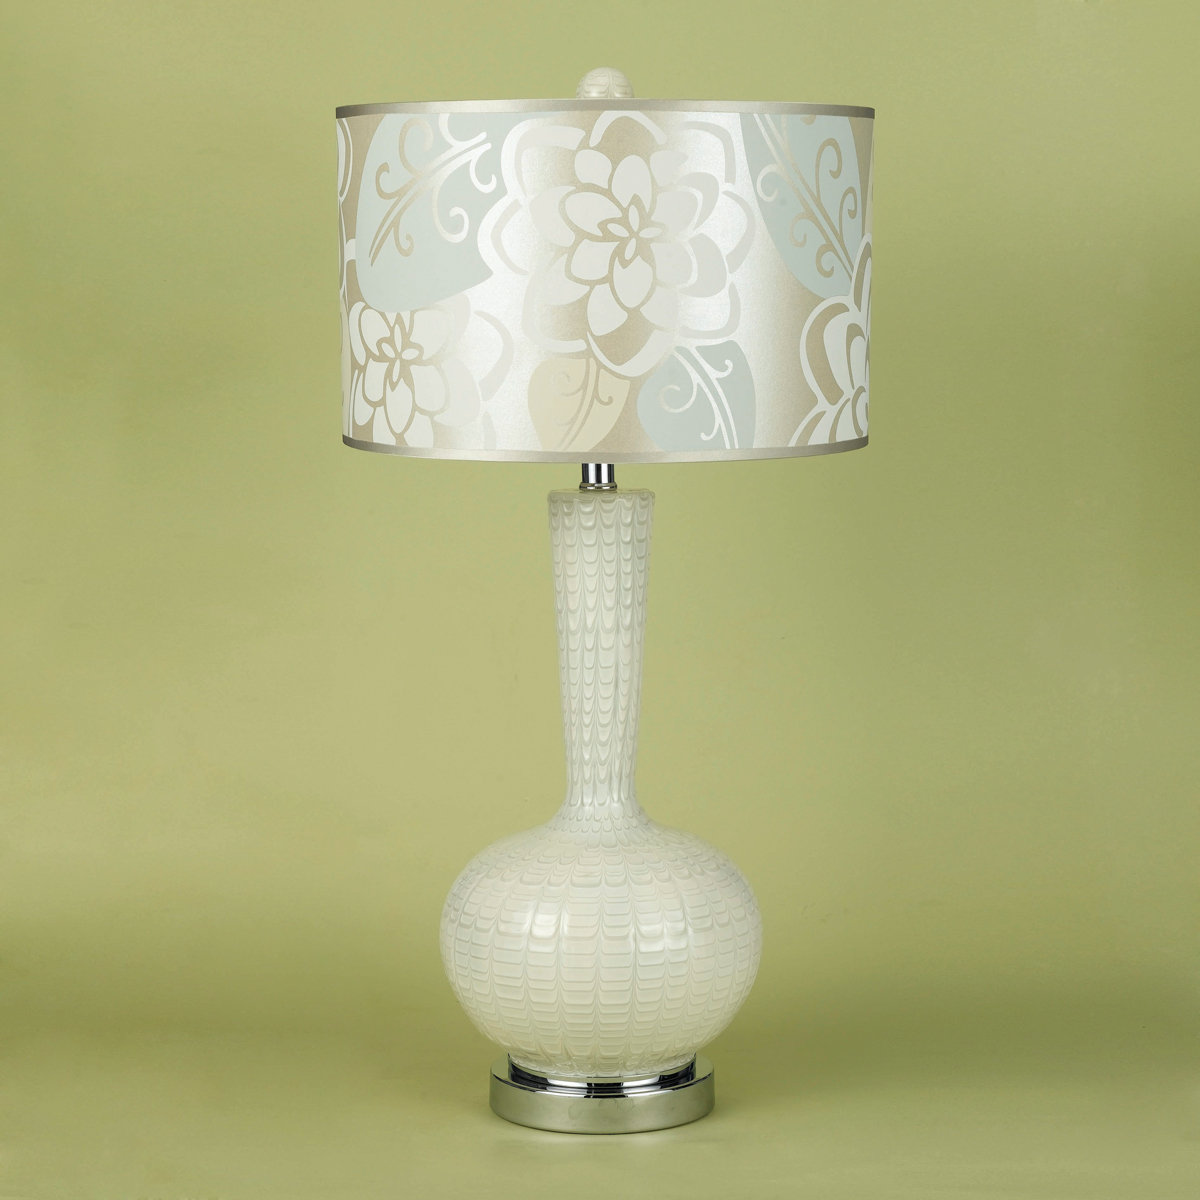 Candice olson table lamps choice image coffee table design ideas candice olson table lamps instalamp candice olson table lamps geotapseo choice image geotapseo Image collections